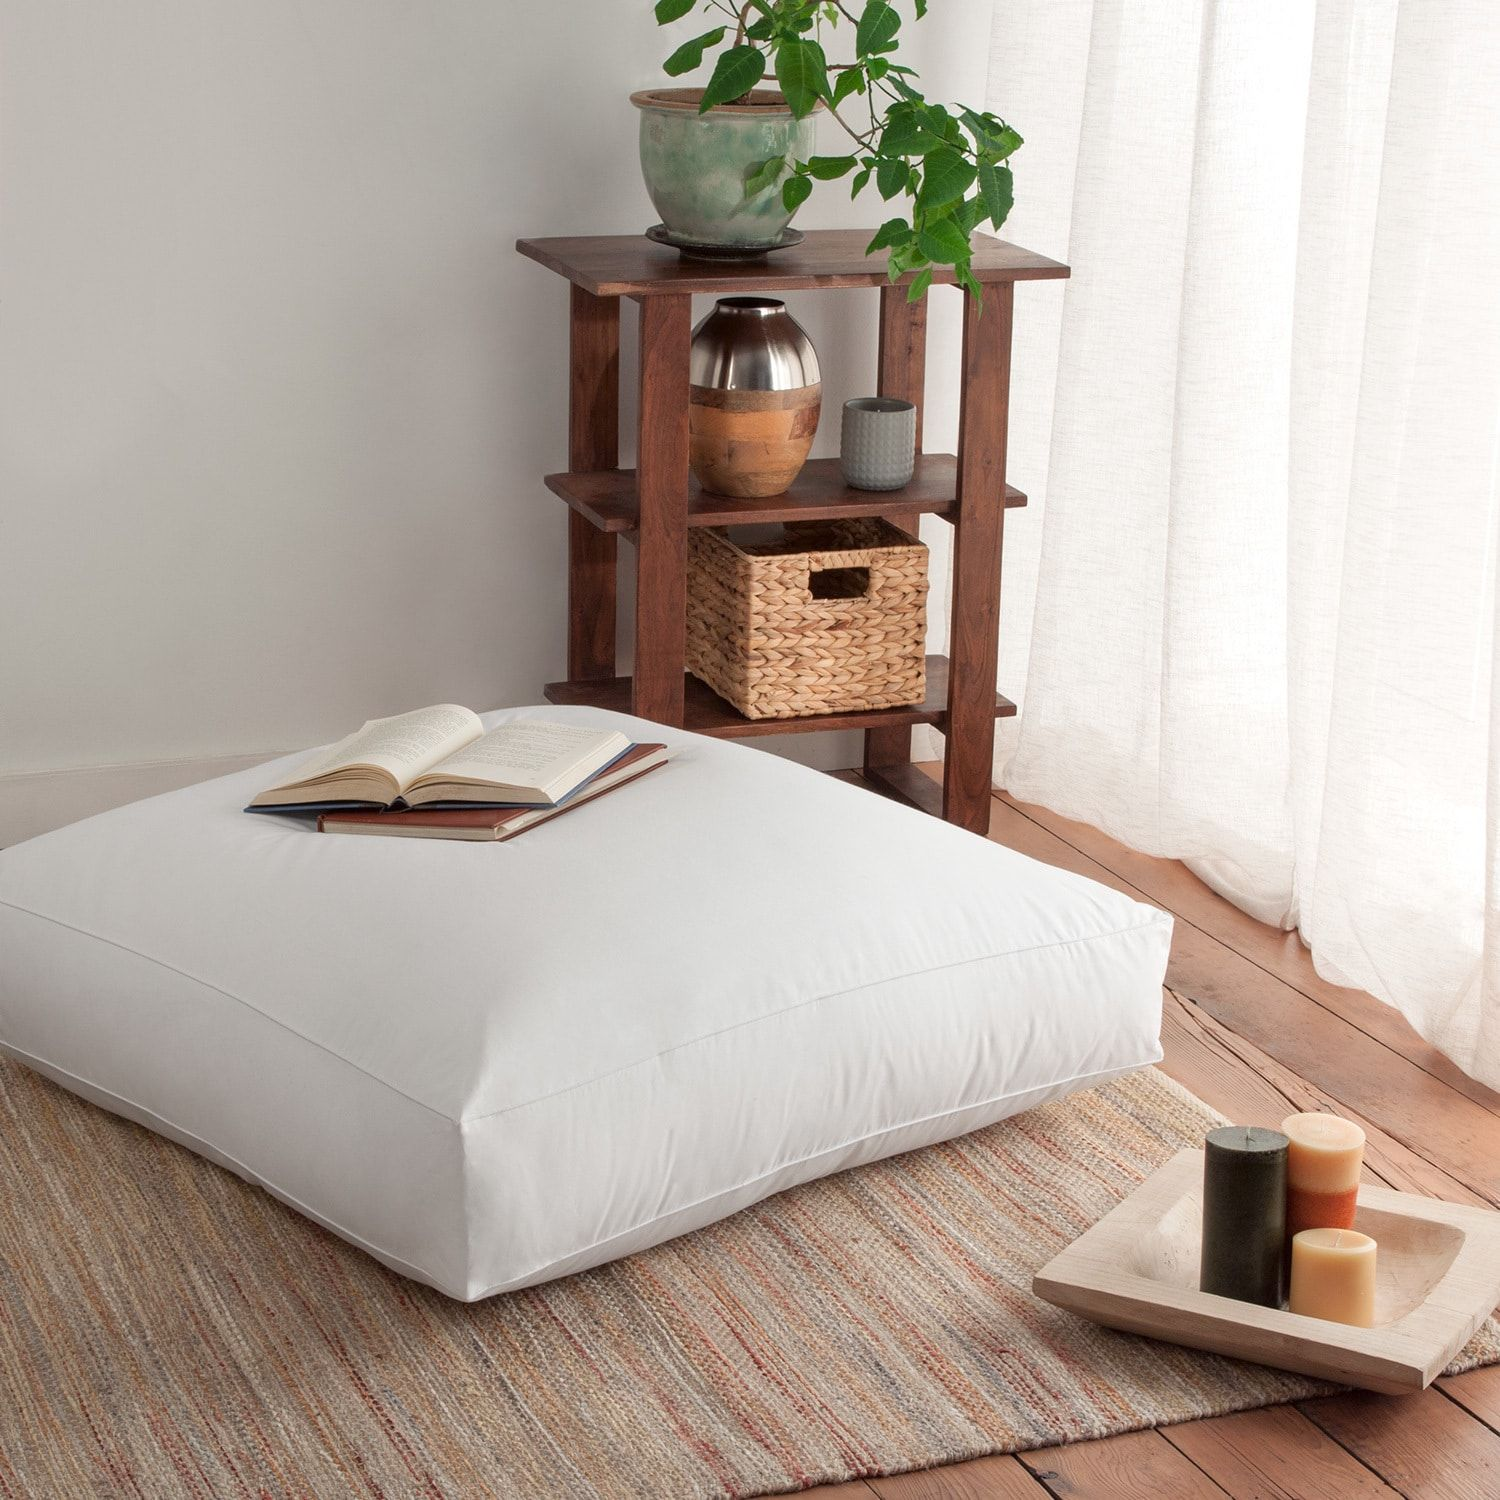 Overstock Com Online Shopping Bedding Furniture Electronics Jewelry Clothing More Large Floor Cushions Large Floor Pillows Floor Seating